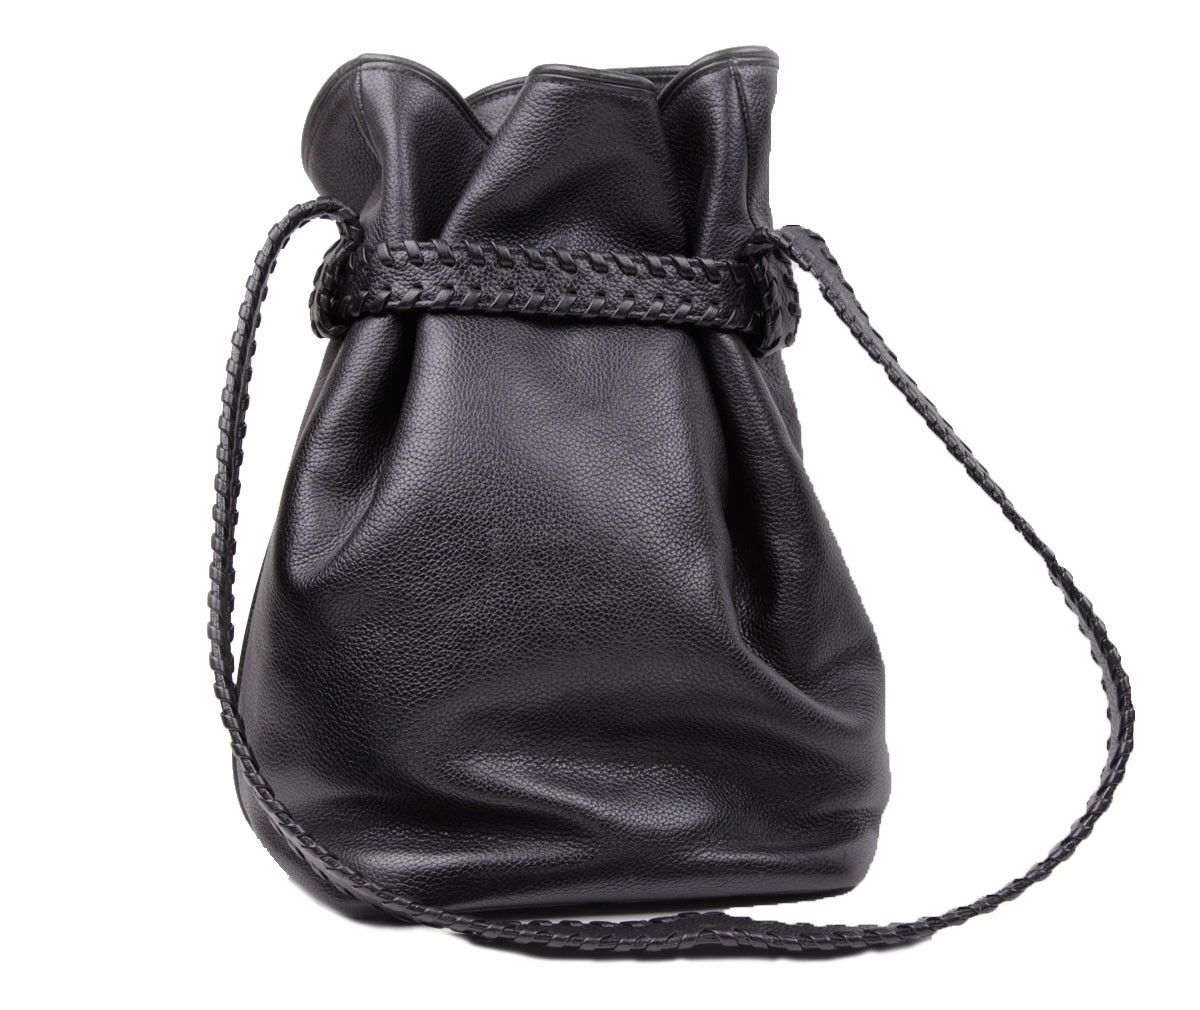 Barry Kieselstein-Cord Black Leather drawstring bag silver ...